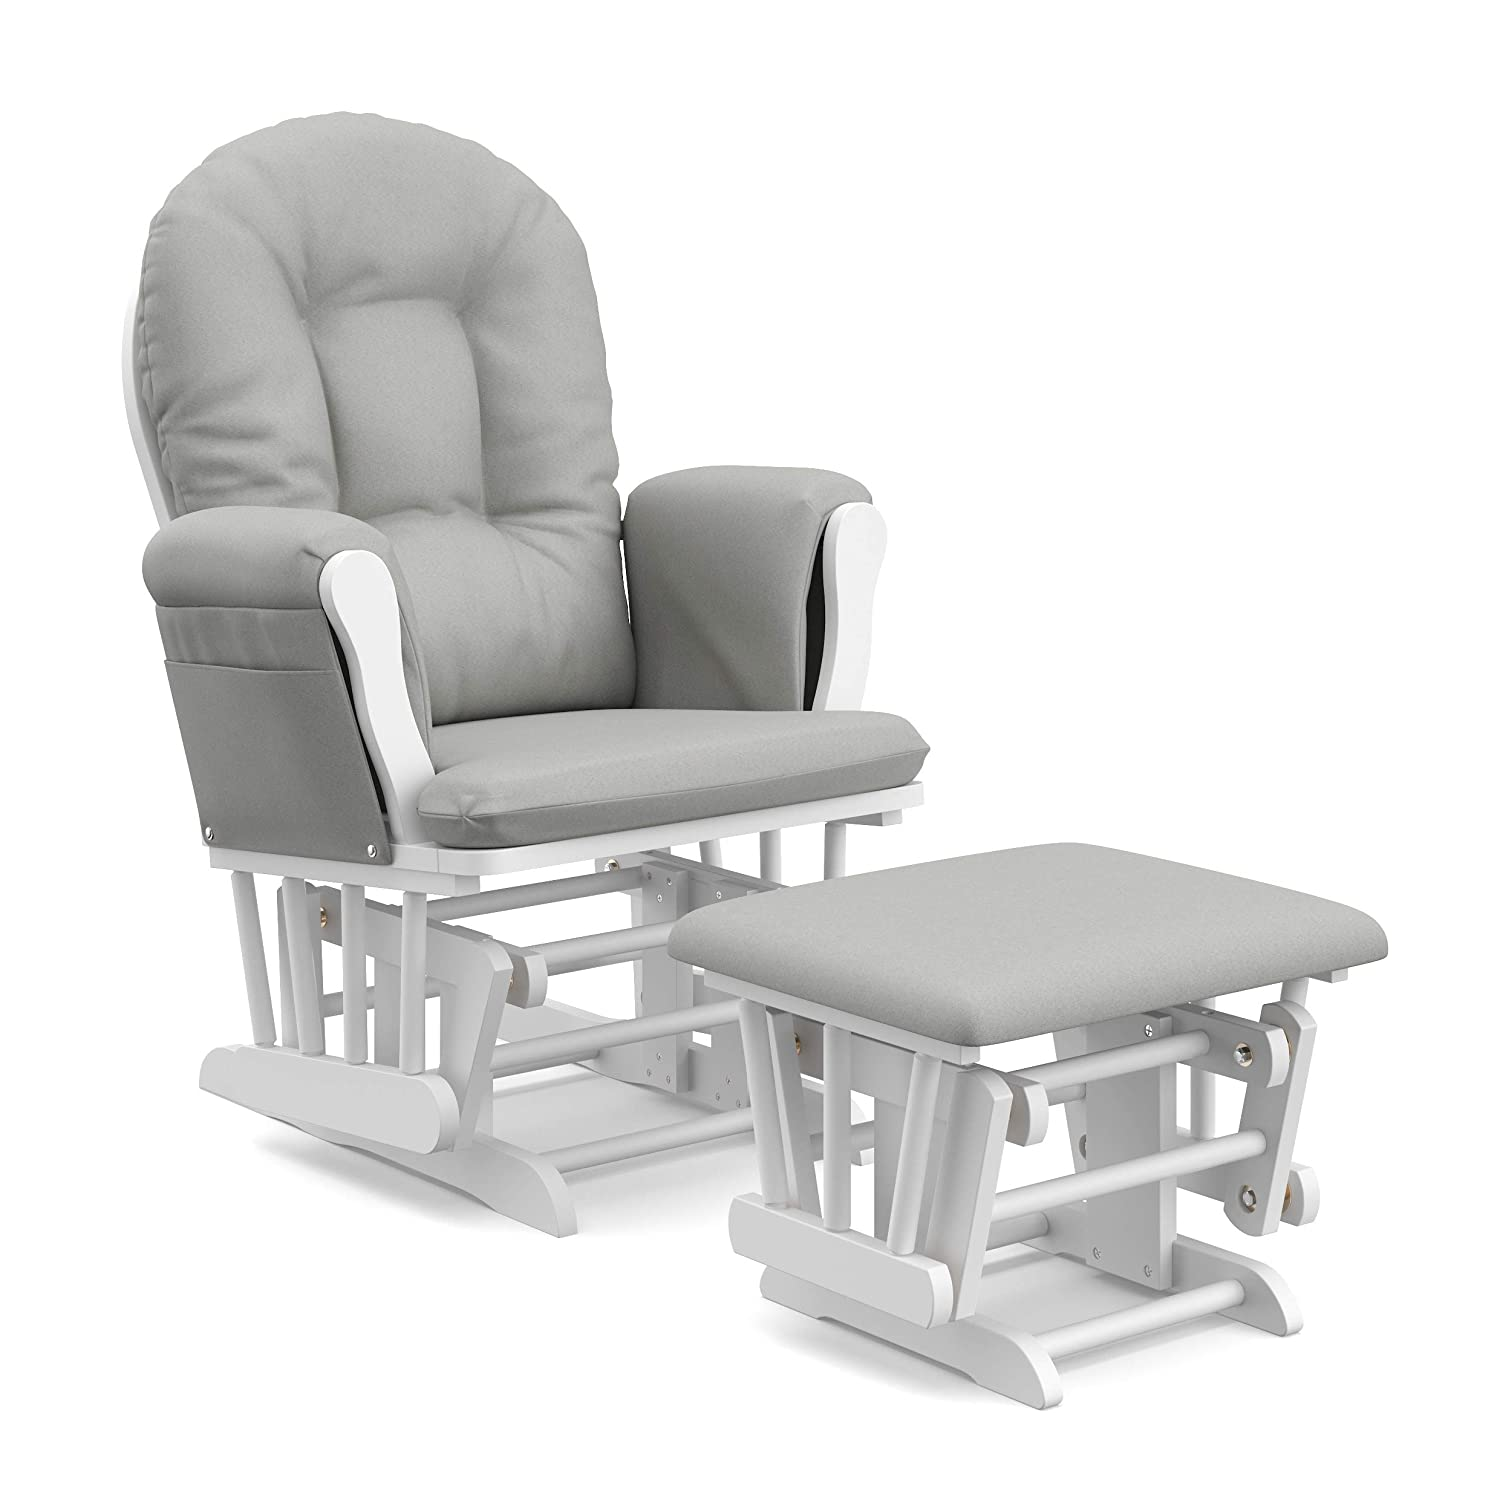 StorkCraft Hoop Glider and Ottoman Cushions, White with Light Gray